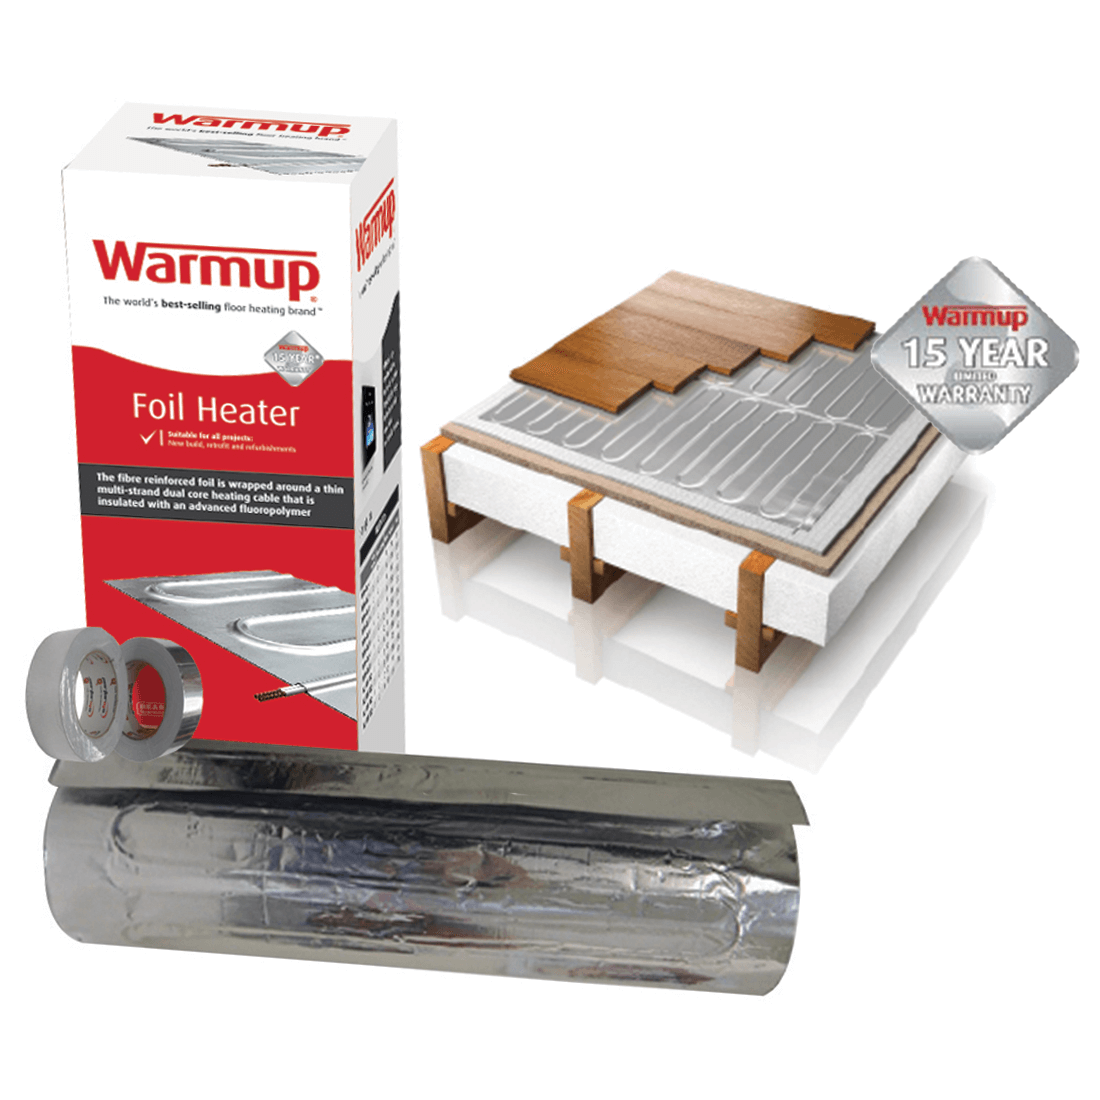 Warmup® Foil Heating Systems